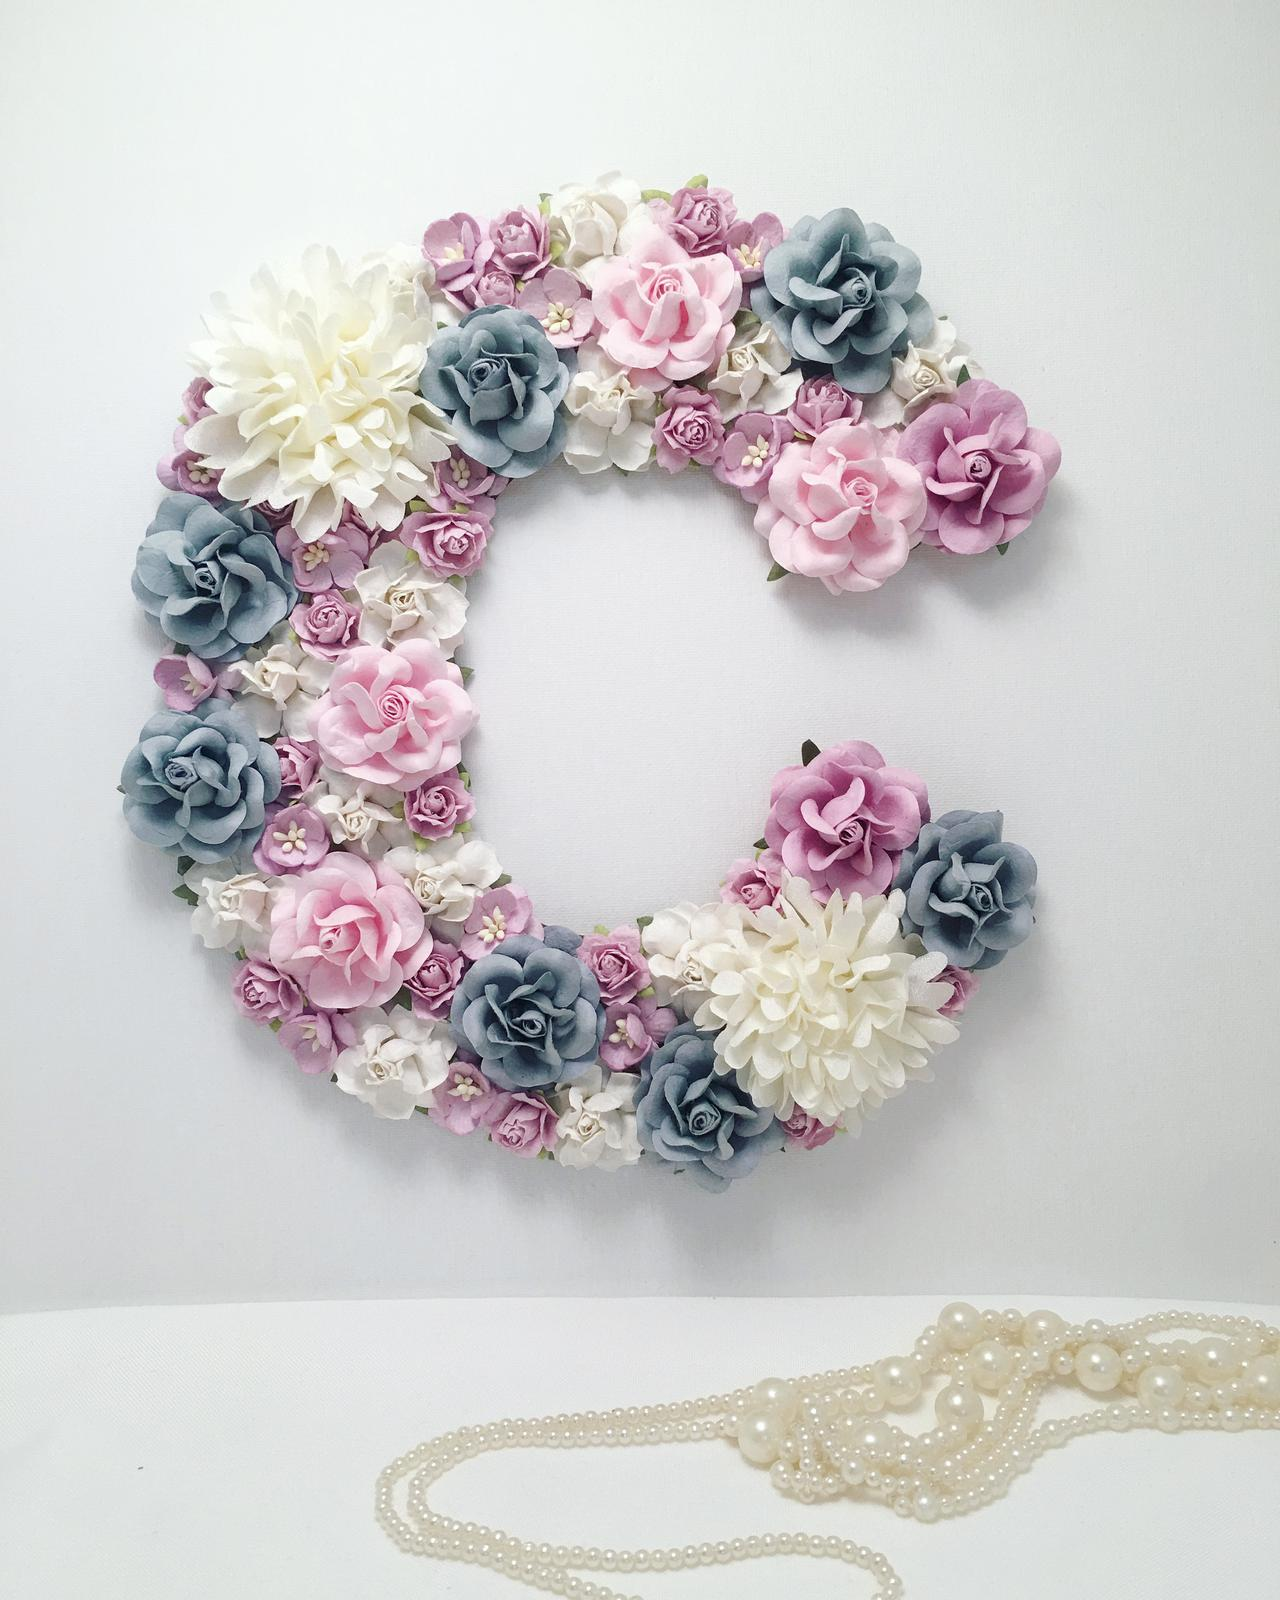 25cm letter with stunning blues